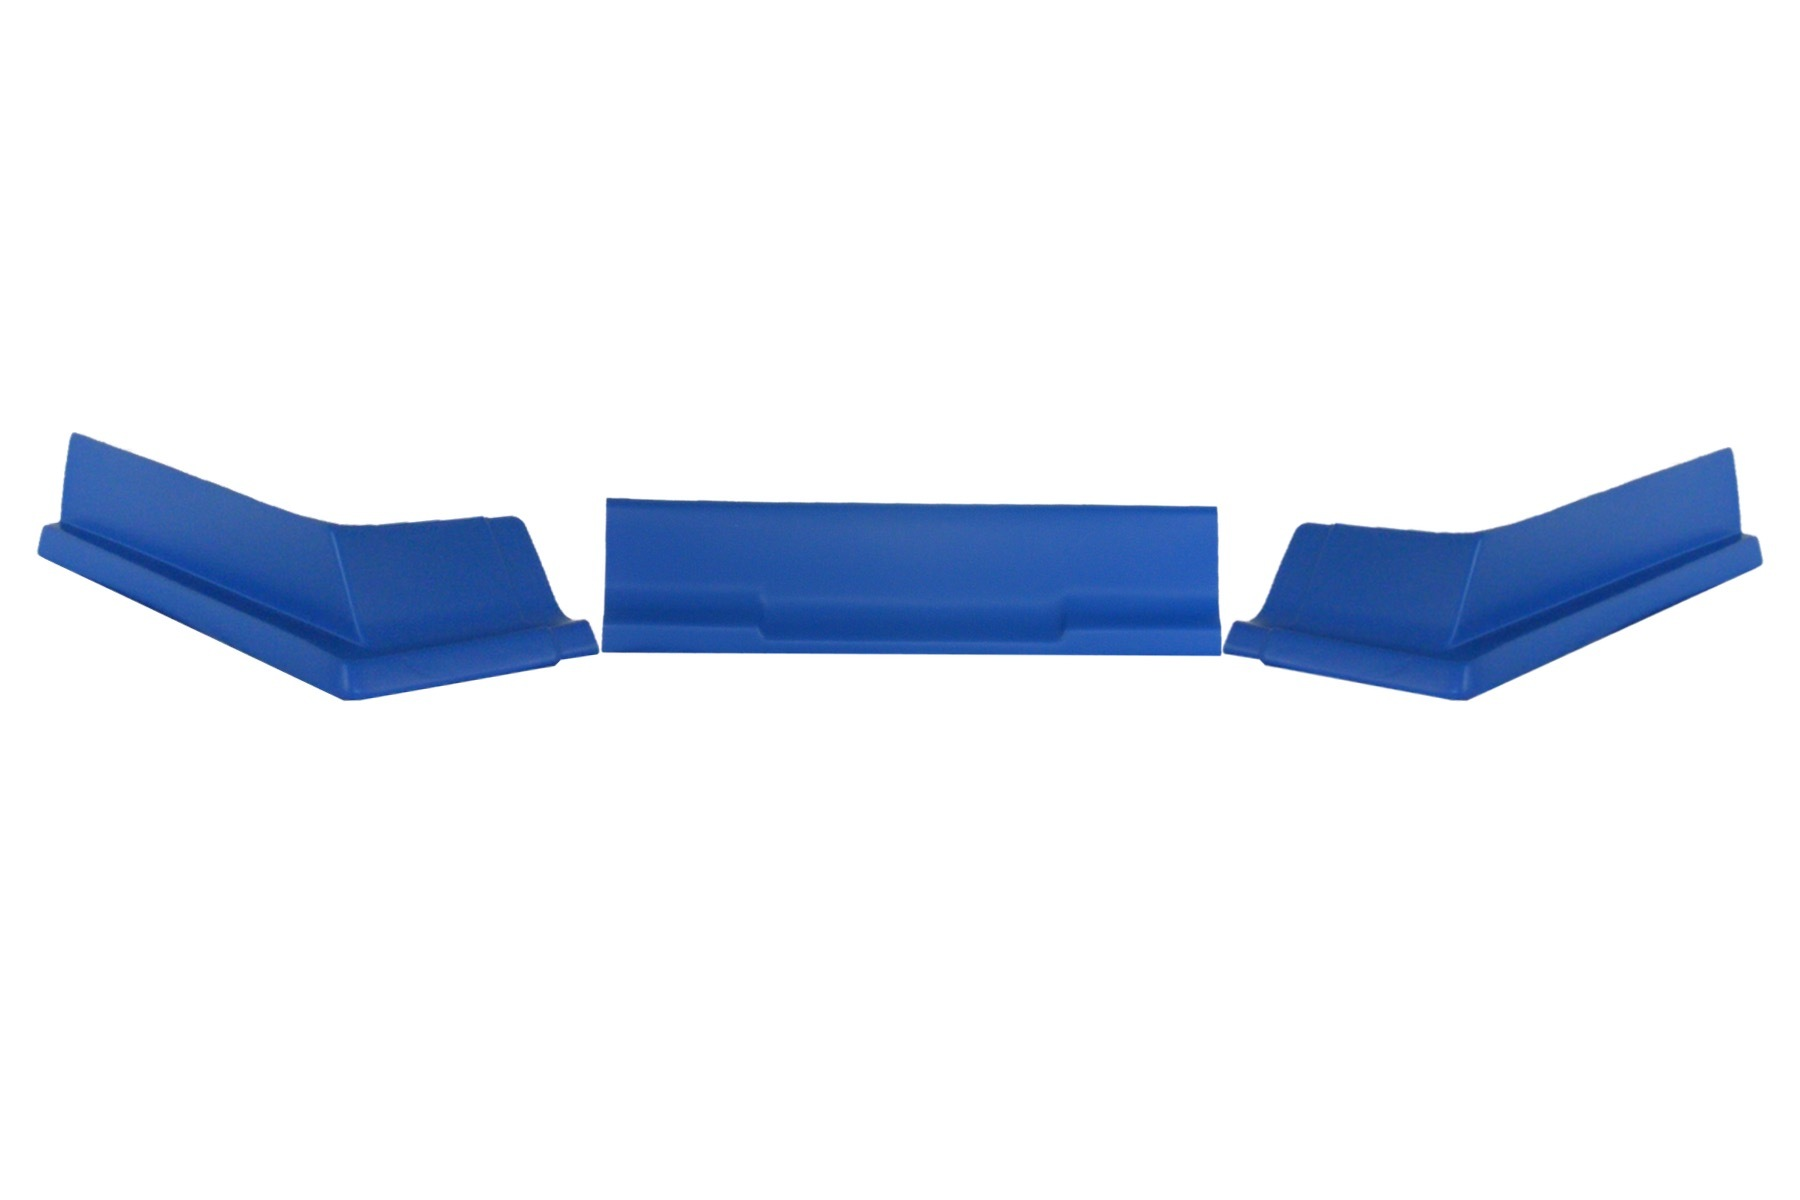 Dominator Racing Products 409-BL Air Valance, 3 Piece, Molded Plastic, Blue, Dirt Modified, Each